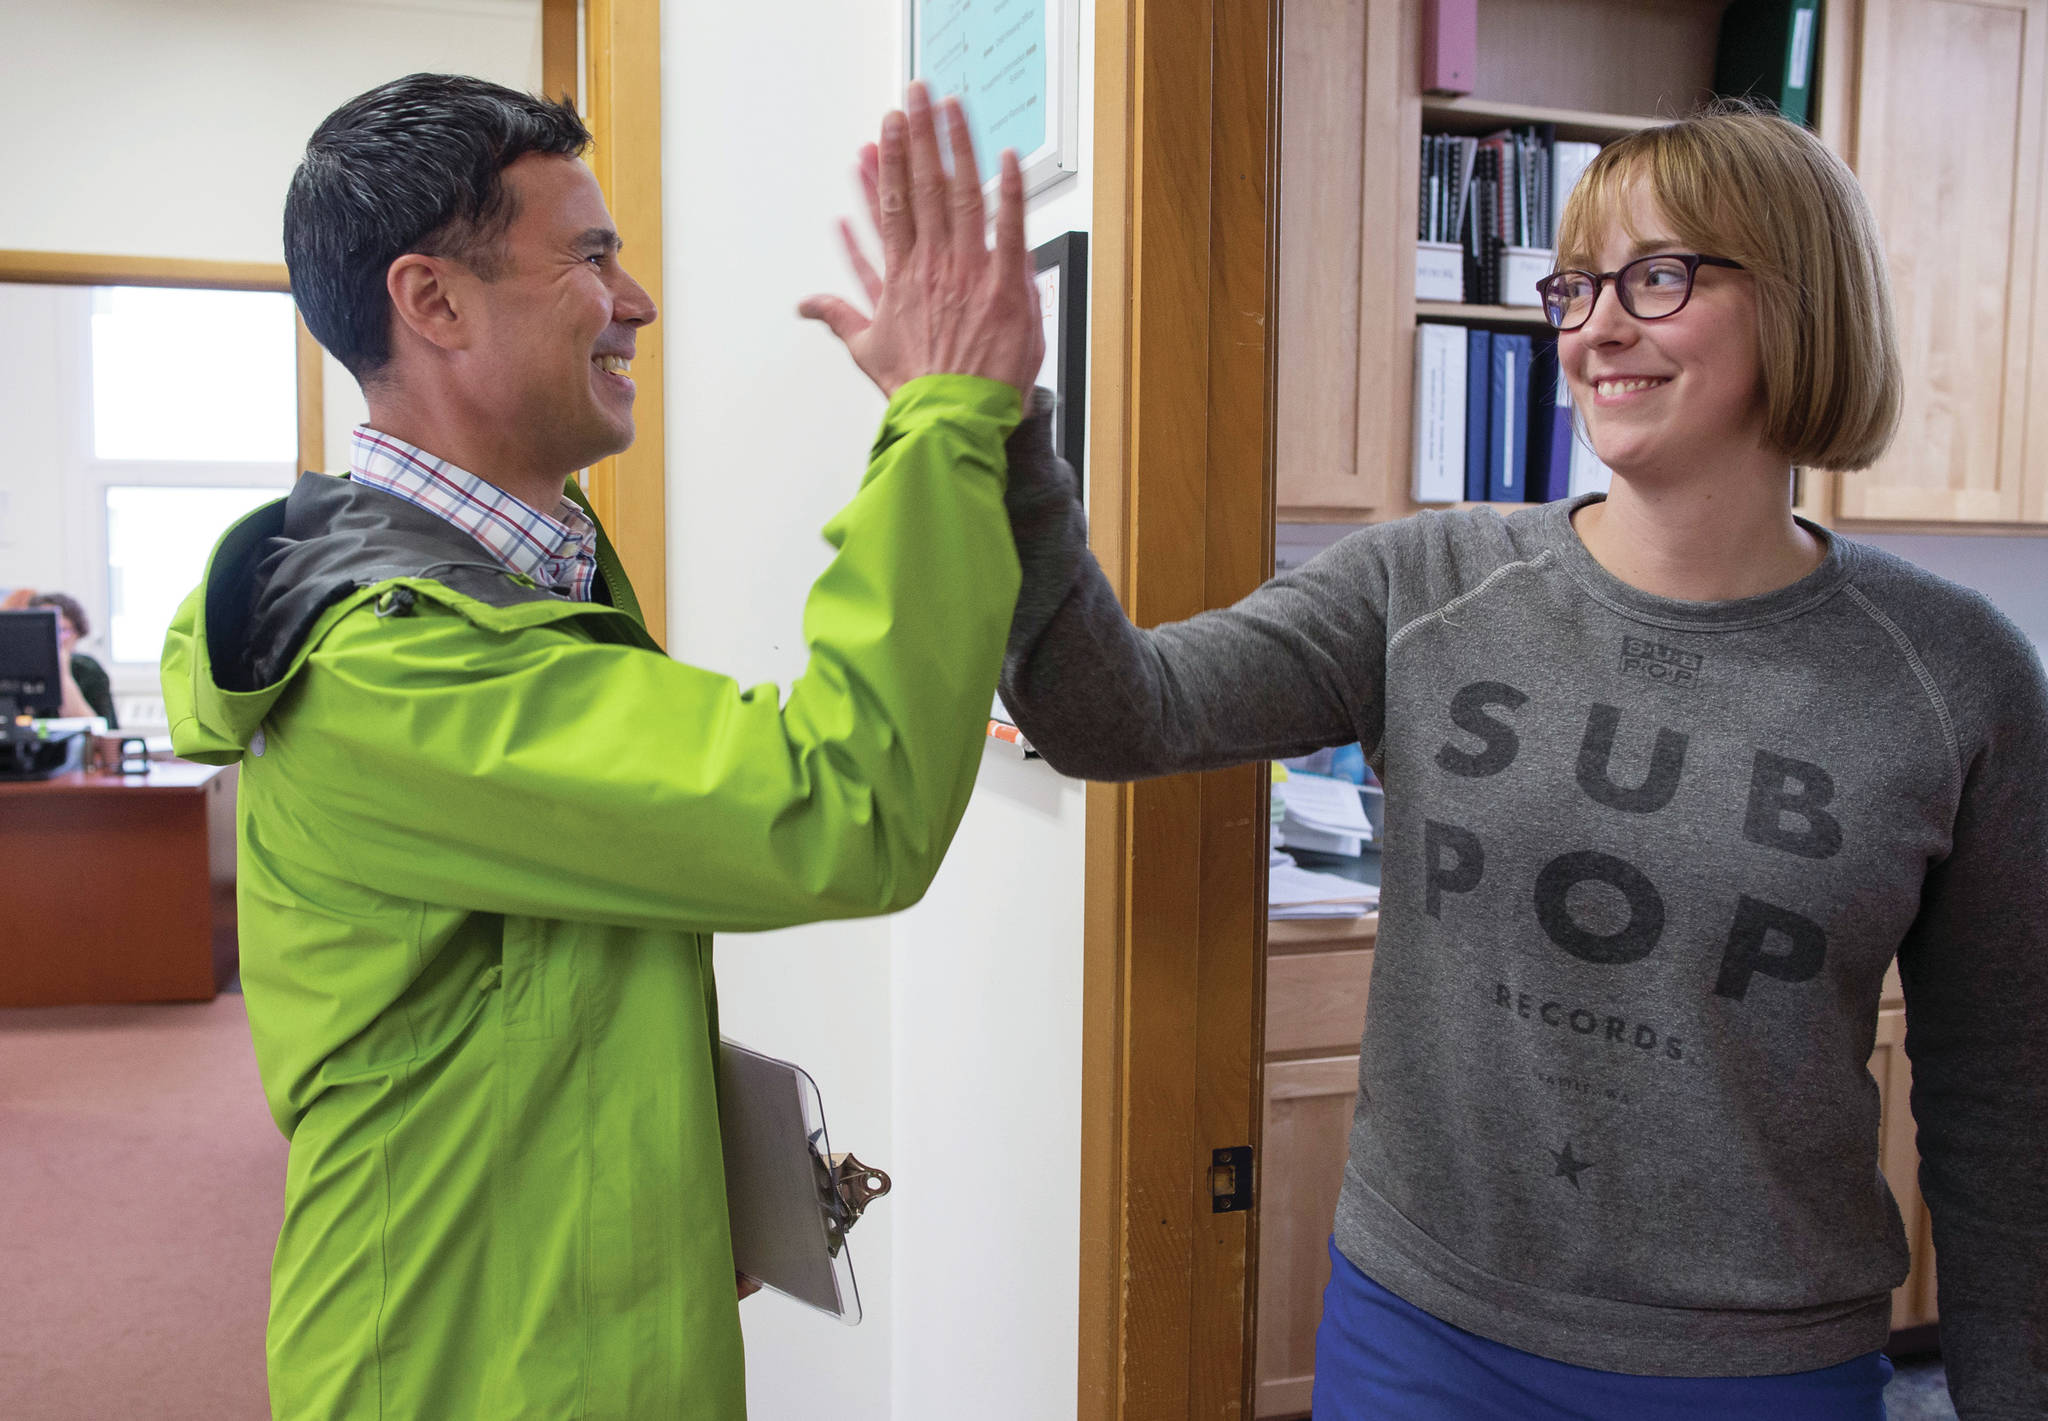 Norton Gregory gives Carole Triem a high-five as he arrives at City Hall to resign from his Assembly seat to run for mayor on Monday, August 13, 2018. Triem was waiting for Gregory to resign so she could file to run for his areawide seat. The Candidate Filing Period for the Oct. 2 Municipal Election closed Monday. (Michael Penn | Juneau Empire)